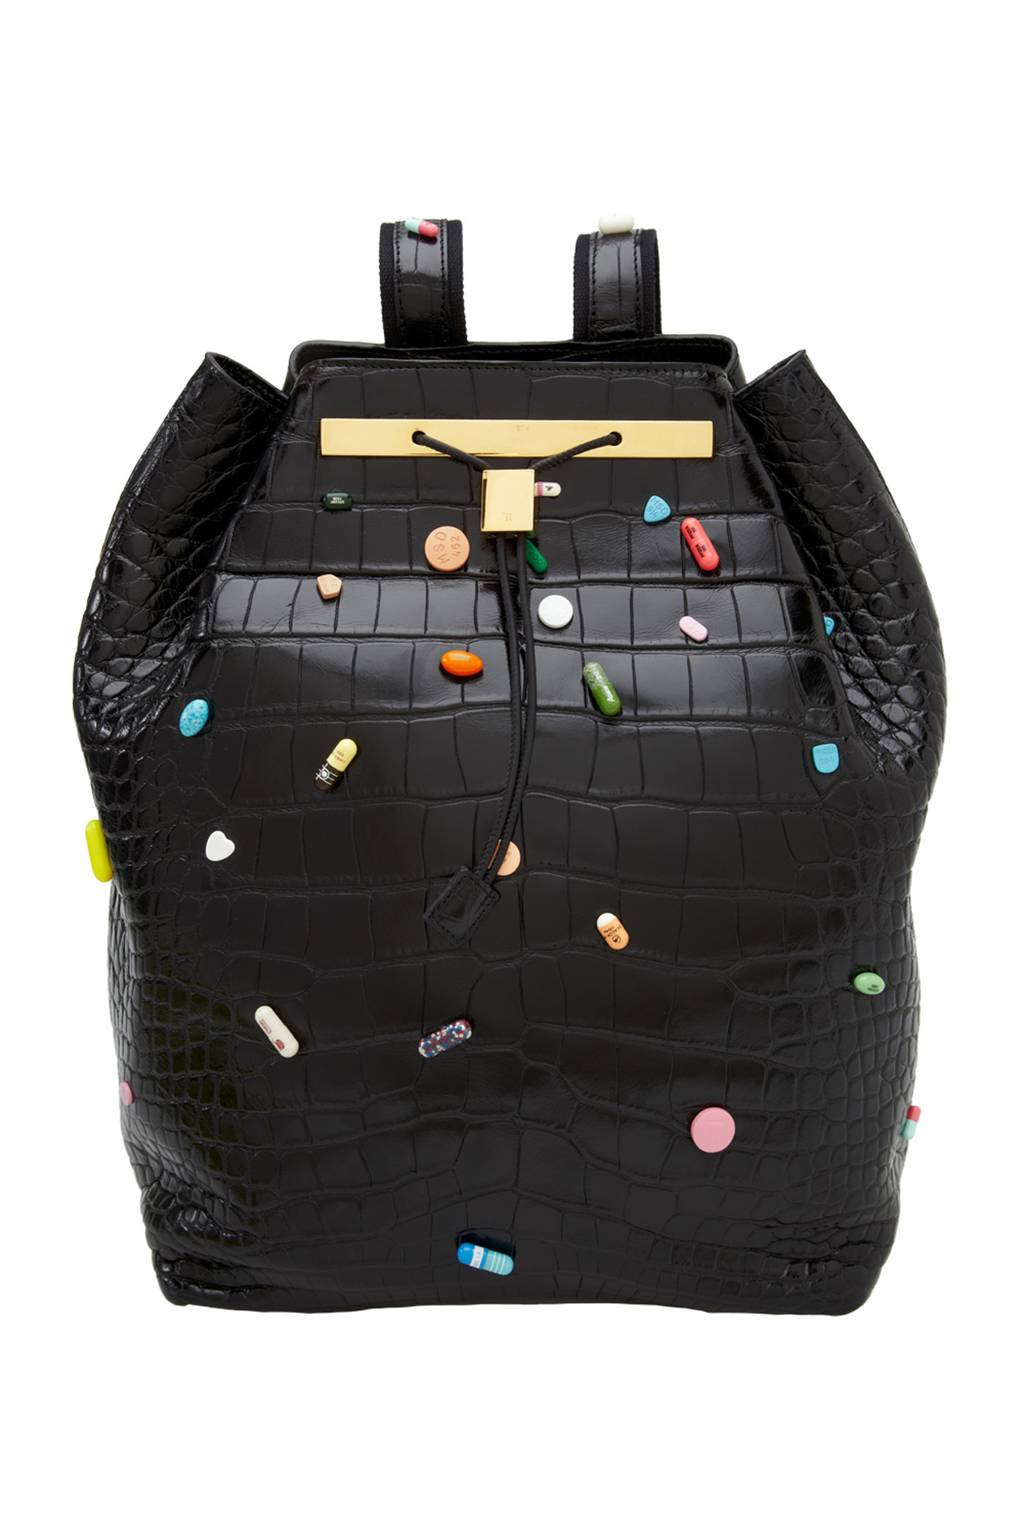 4b6ead75e Olsen Damien Hirst The Row Backpack Collection - Mary Kate Ashley Olsen -  Just One Eye | British Vogue